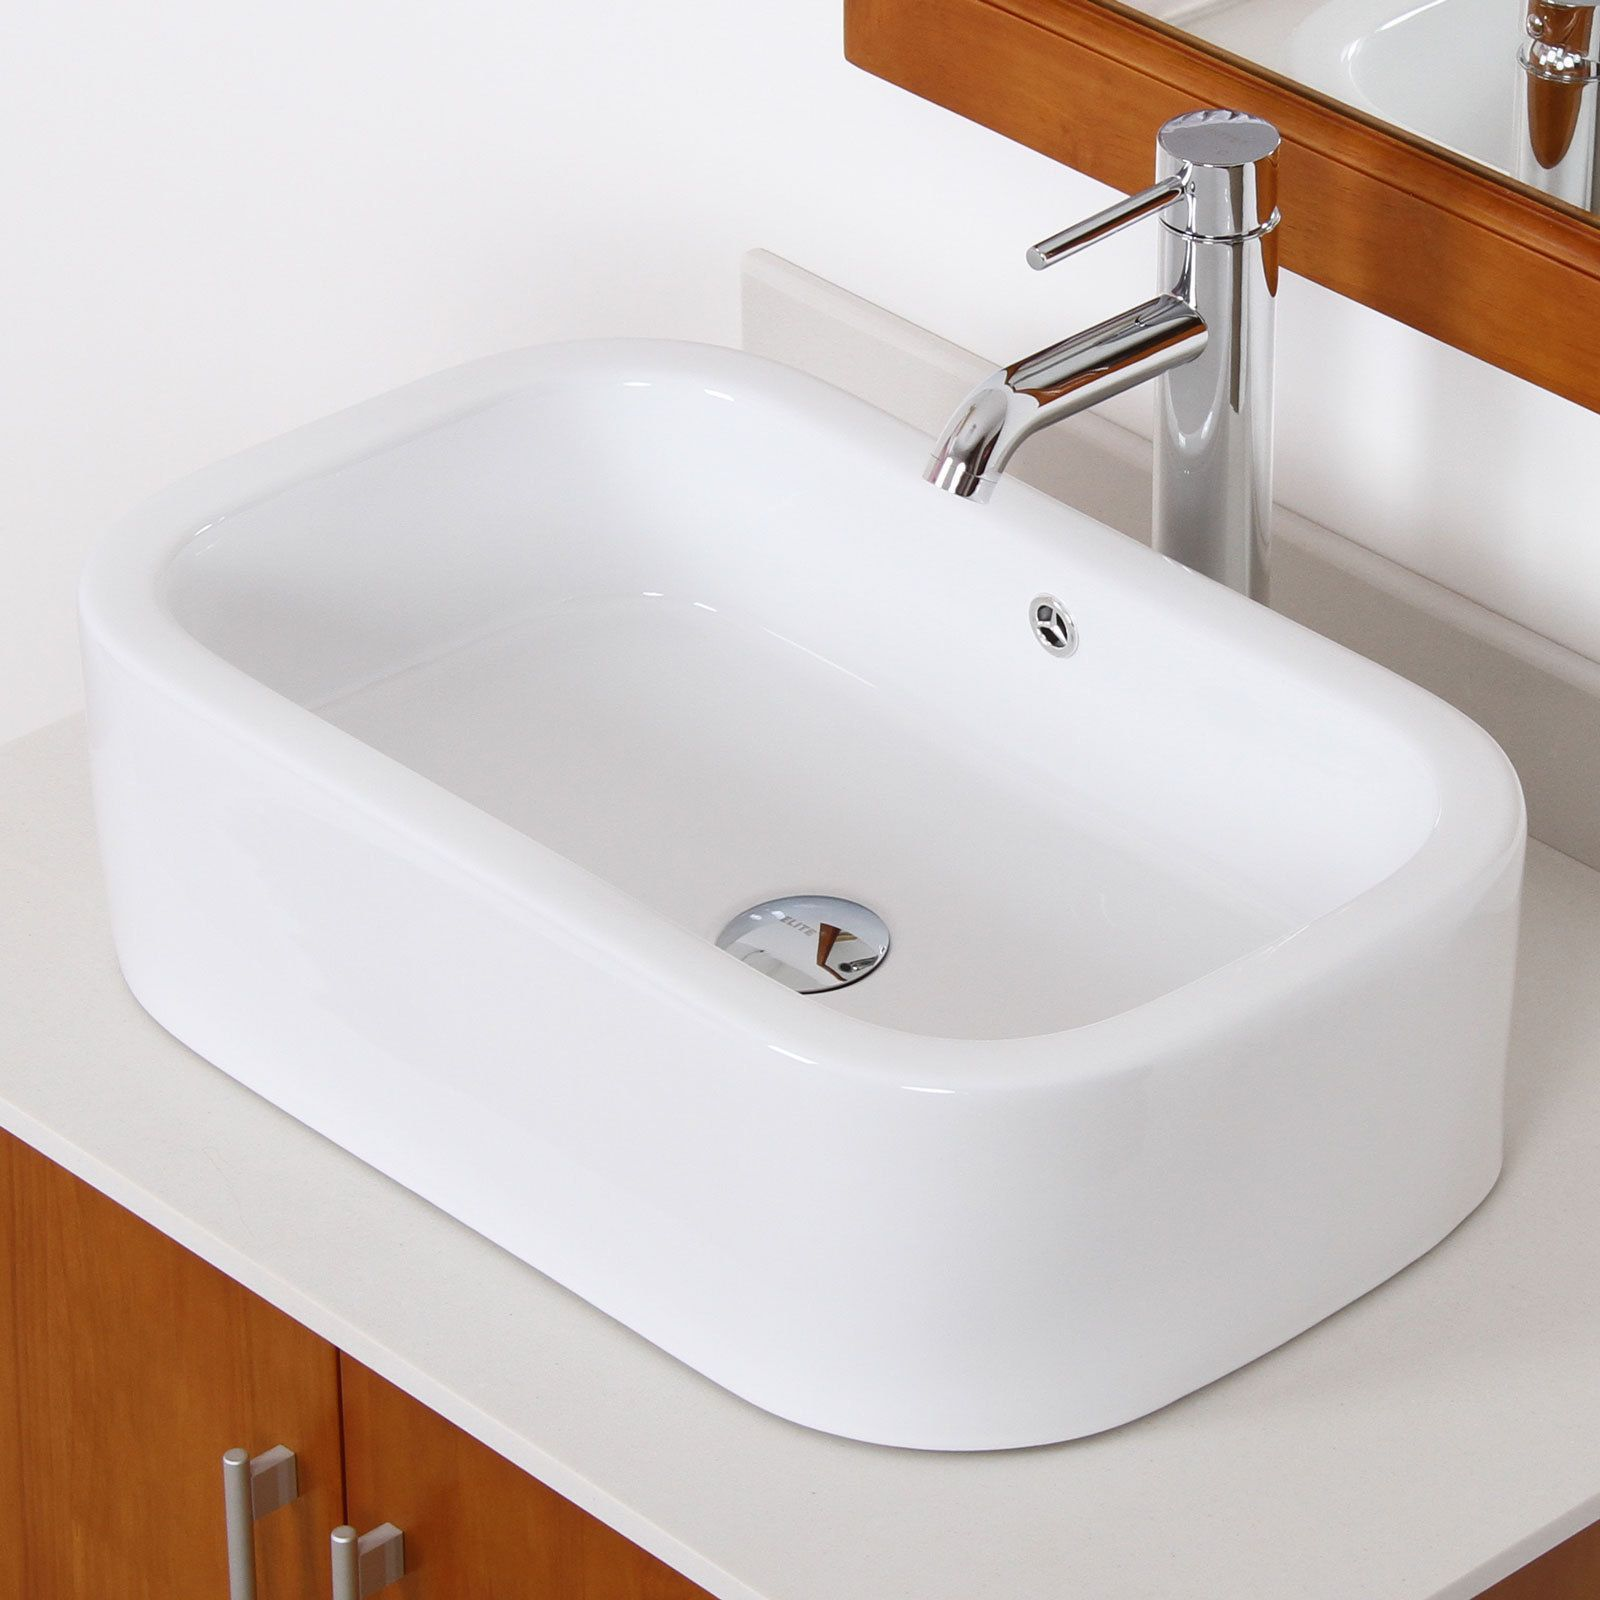 New Post Best Tubs For Soaking Visit Bathroomremodelideassclub - Home